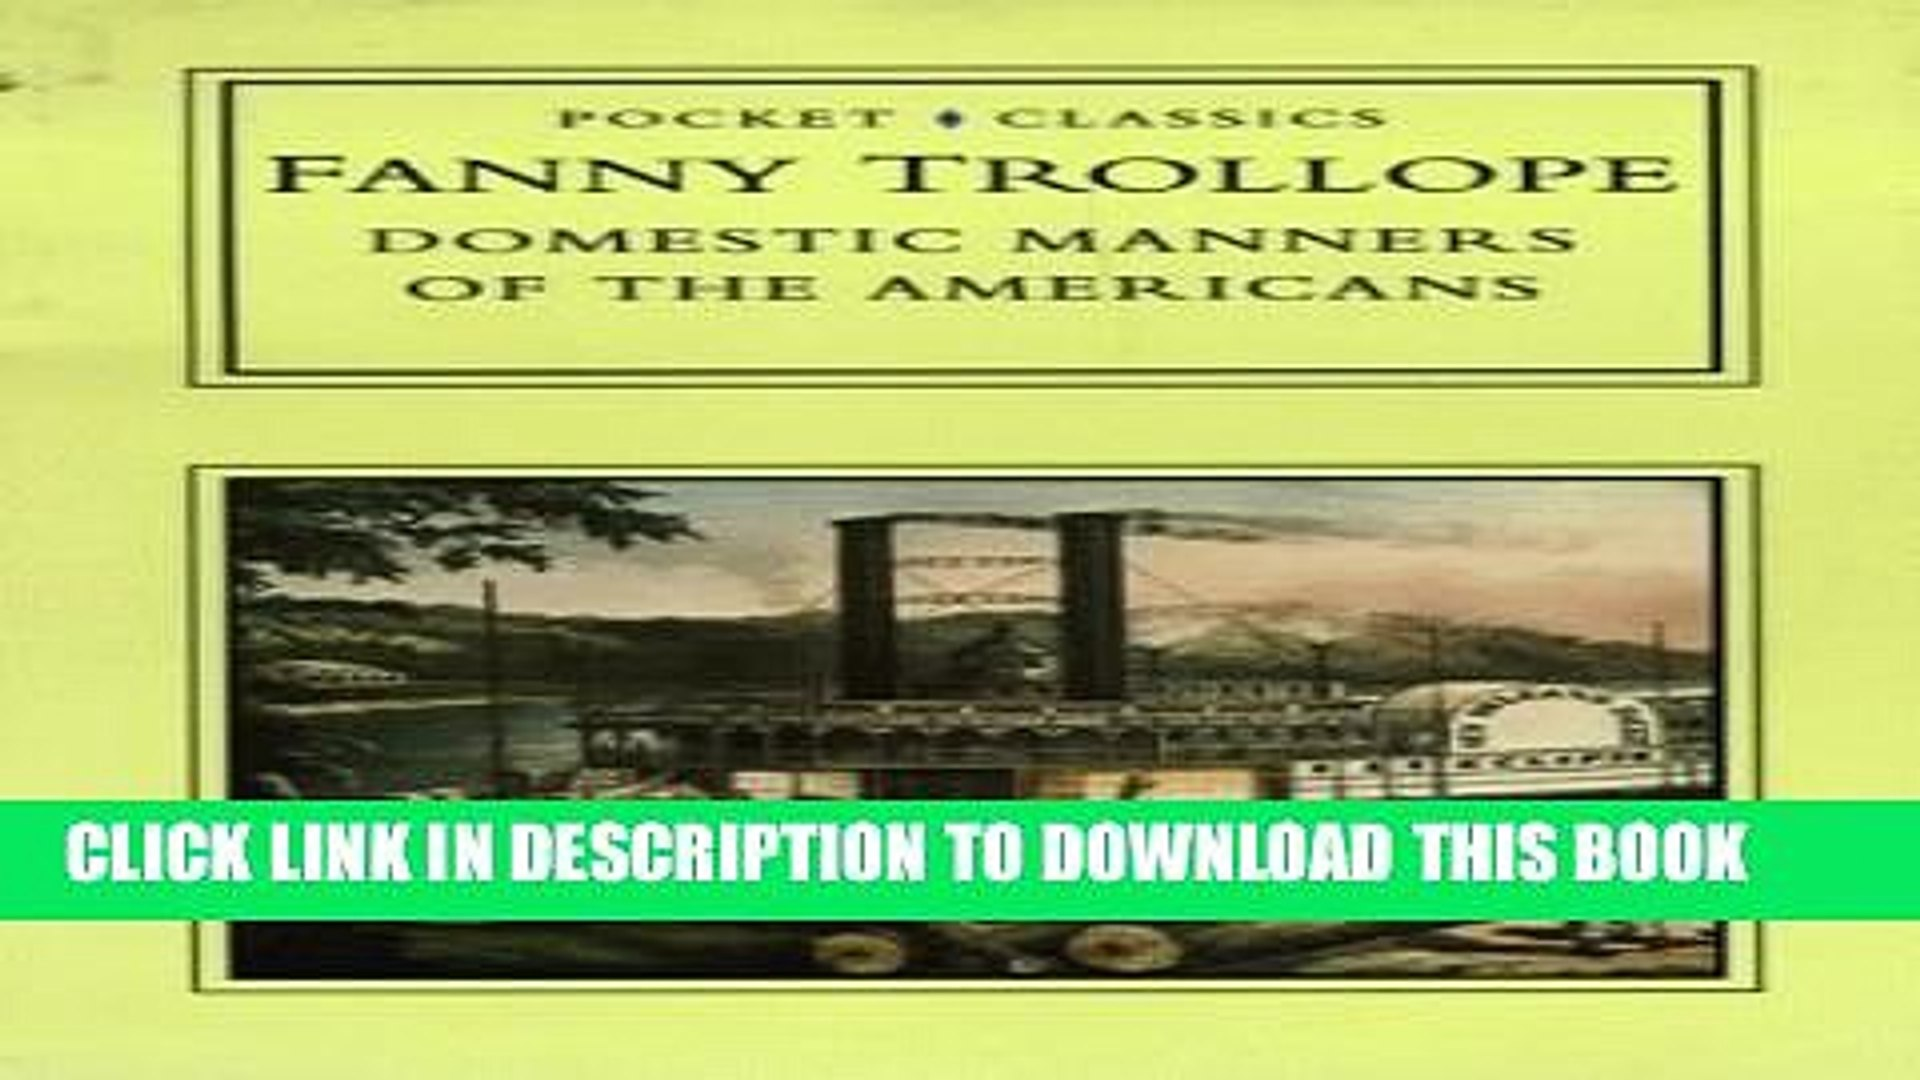 [PDF] Domestic Manners of the Americans (Pocket Classics) Full Online